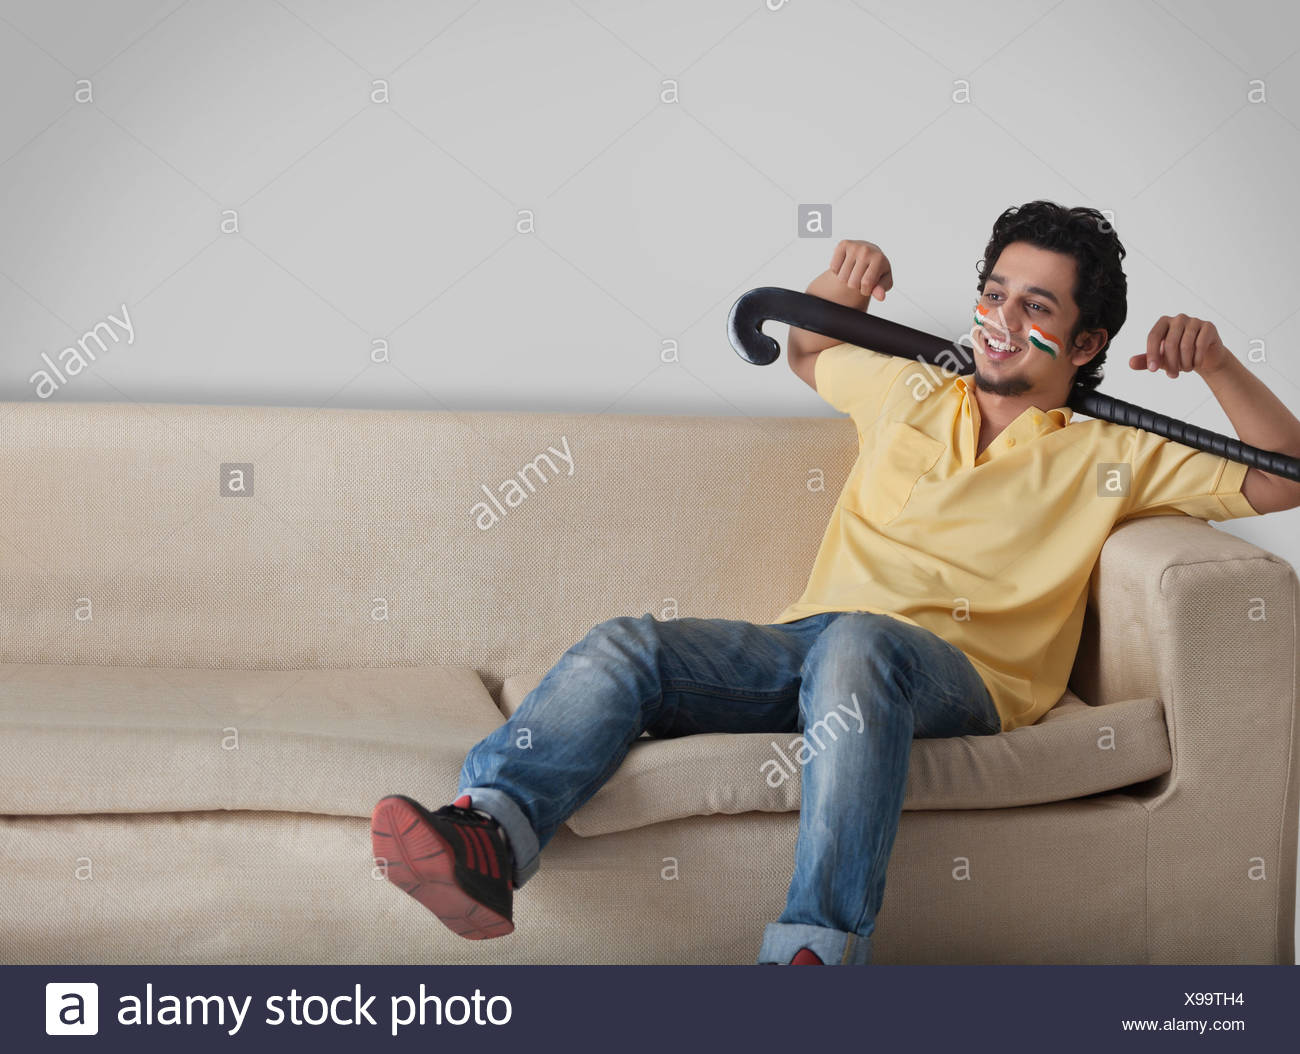 Young man in casuals on sofa looking away while holding hockey stick - Stock Image